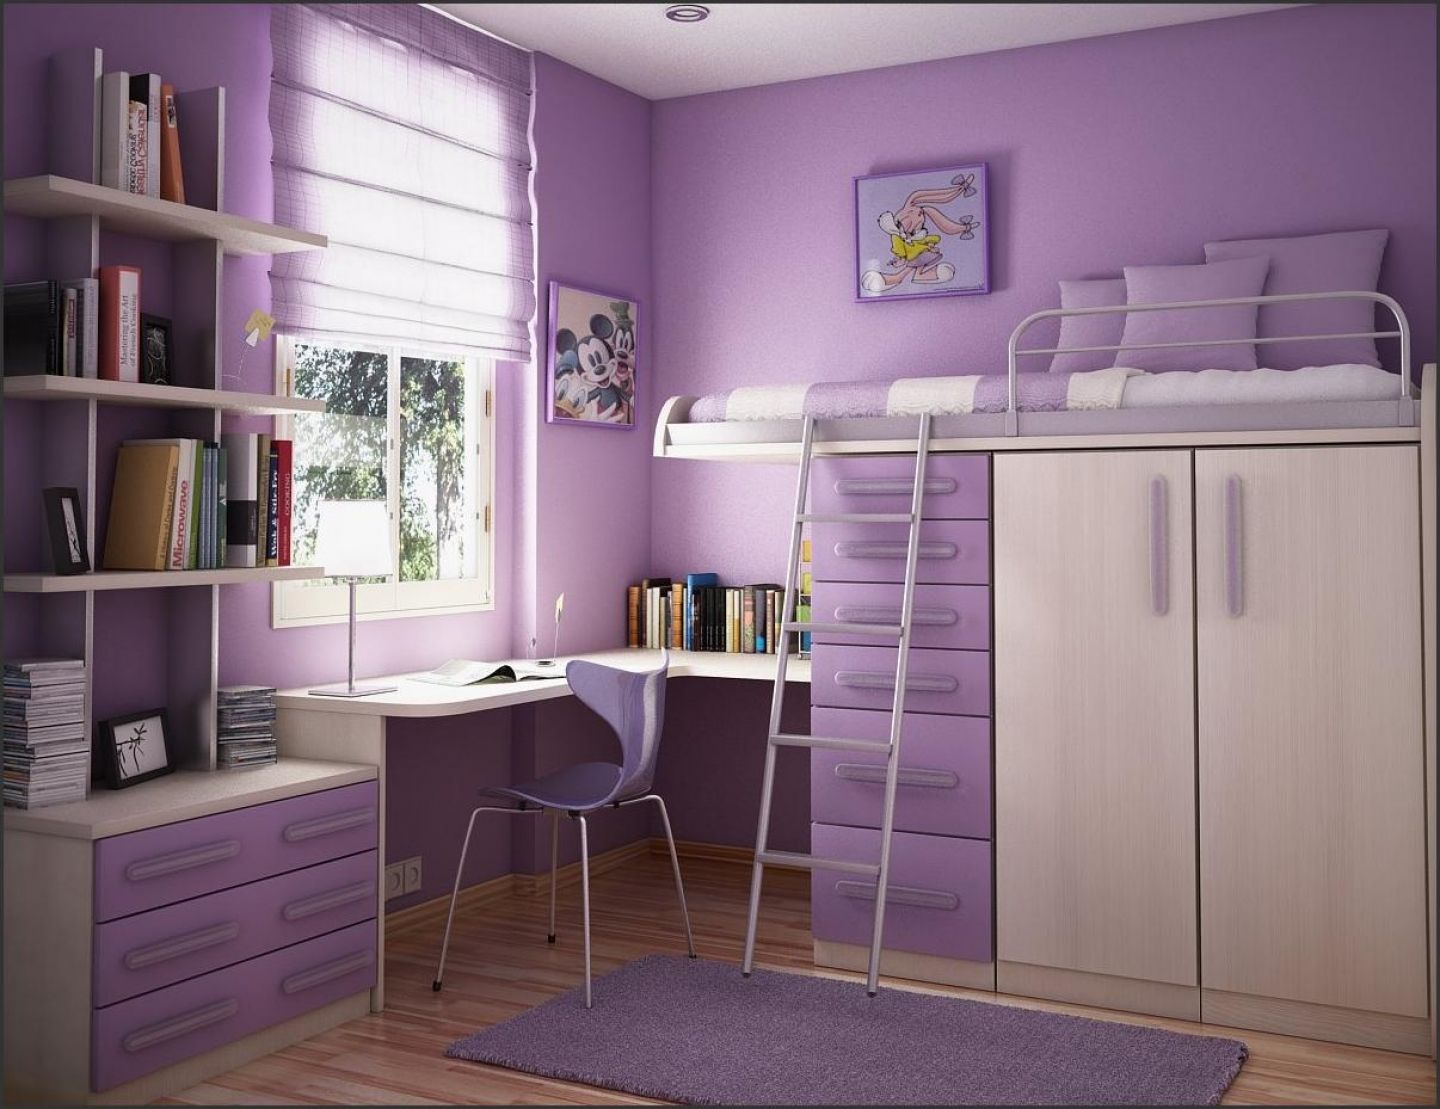 teen girl bedroom decorating ideas 06 13 1403 - Cool Bedroom Designs For Girls